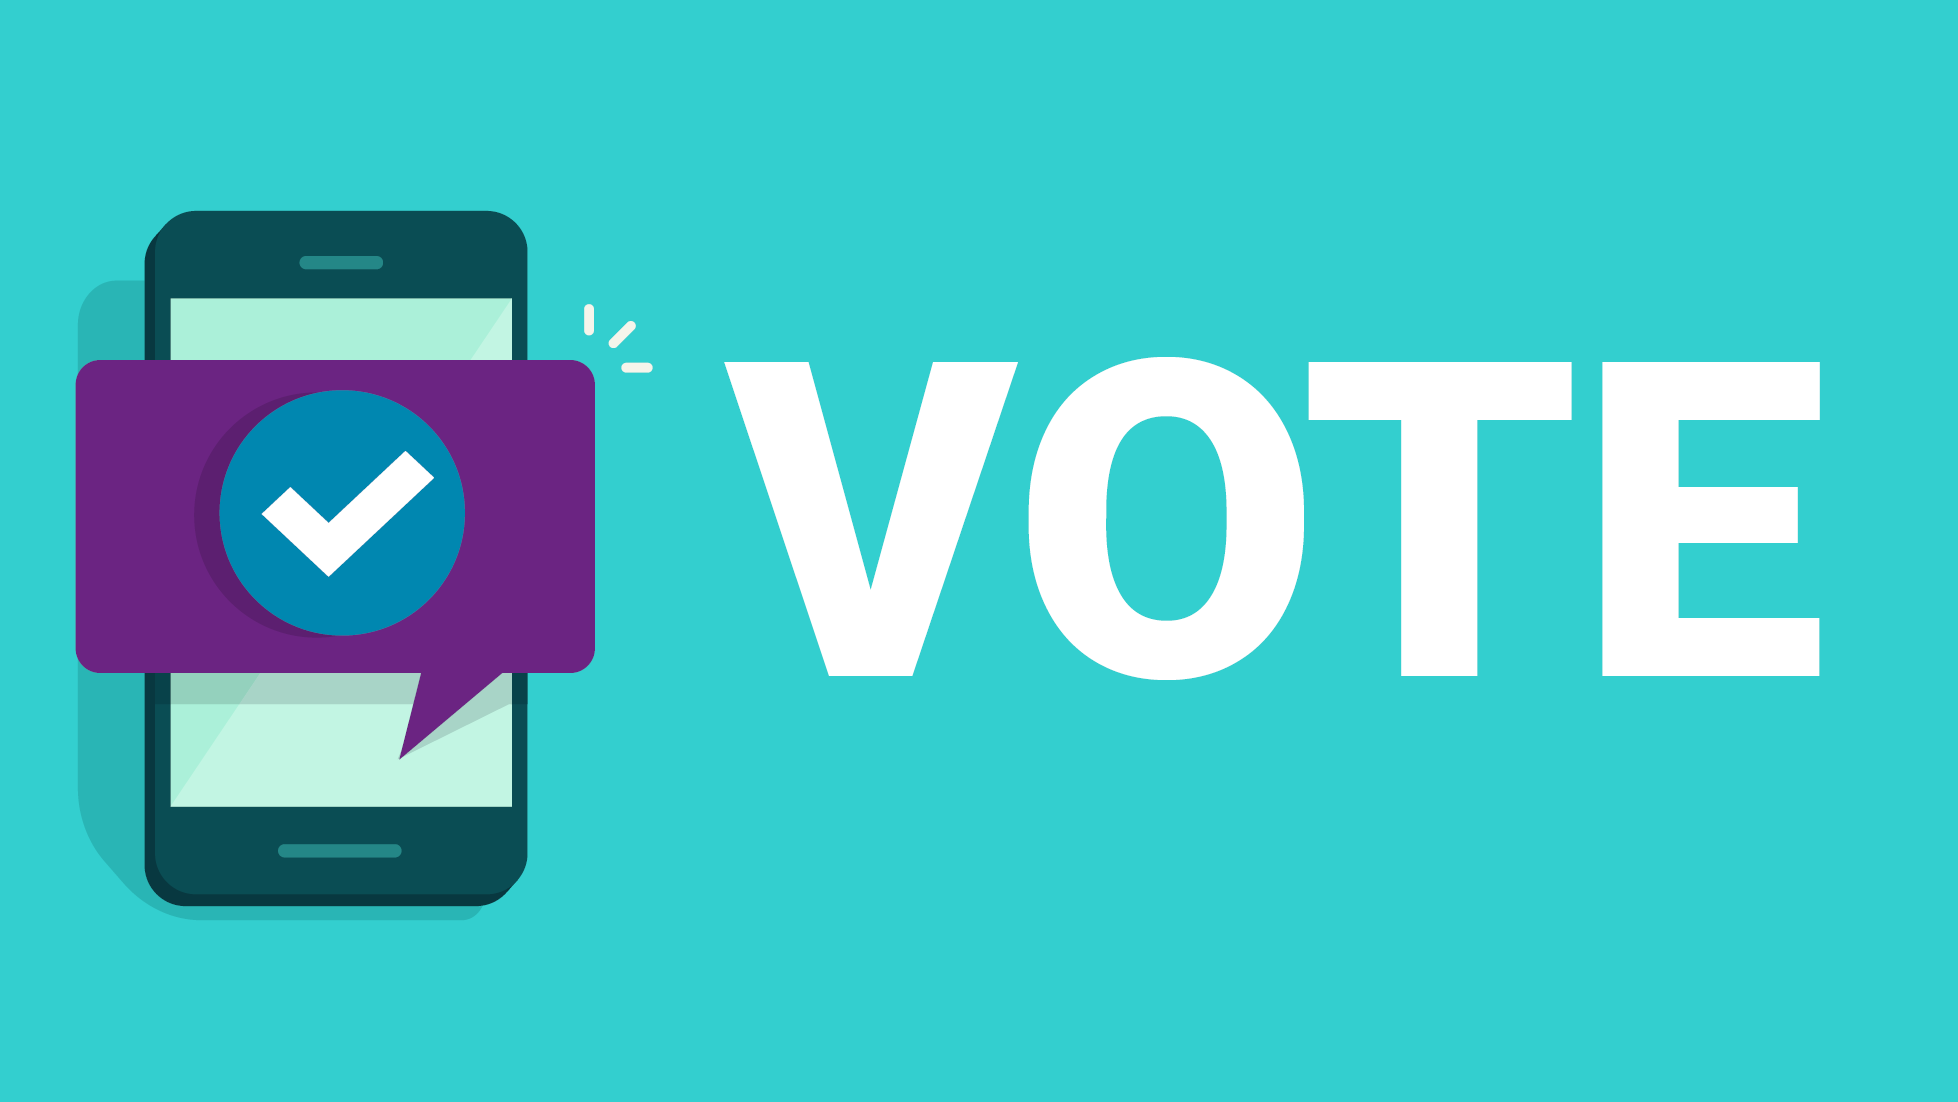 vote on your mobile graphic